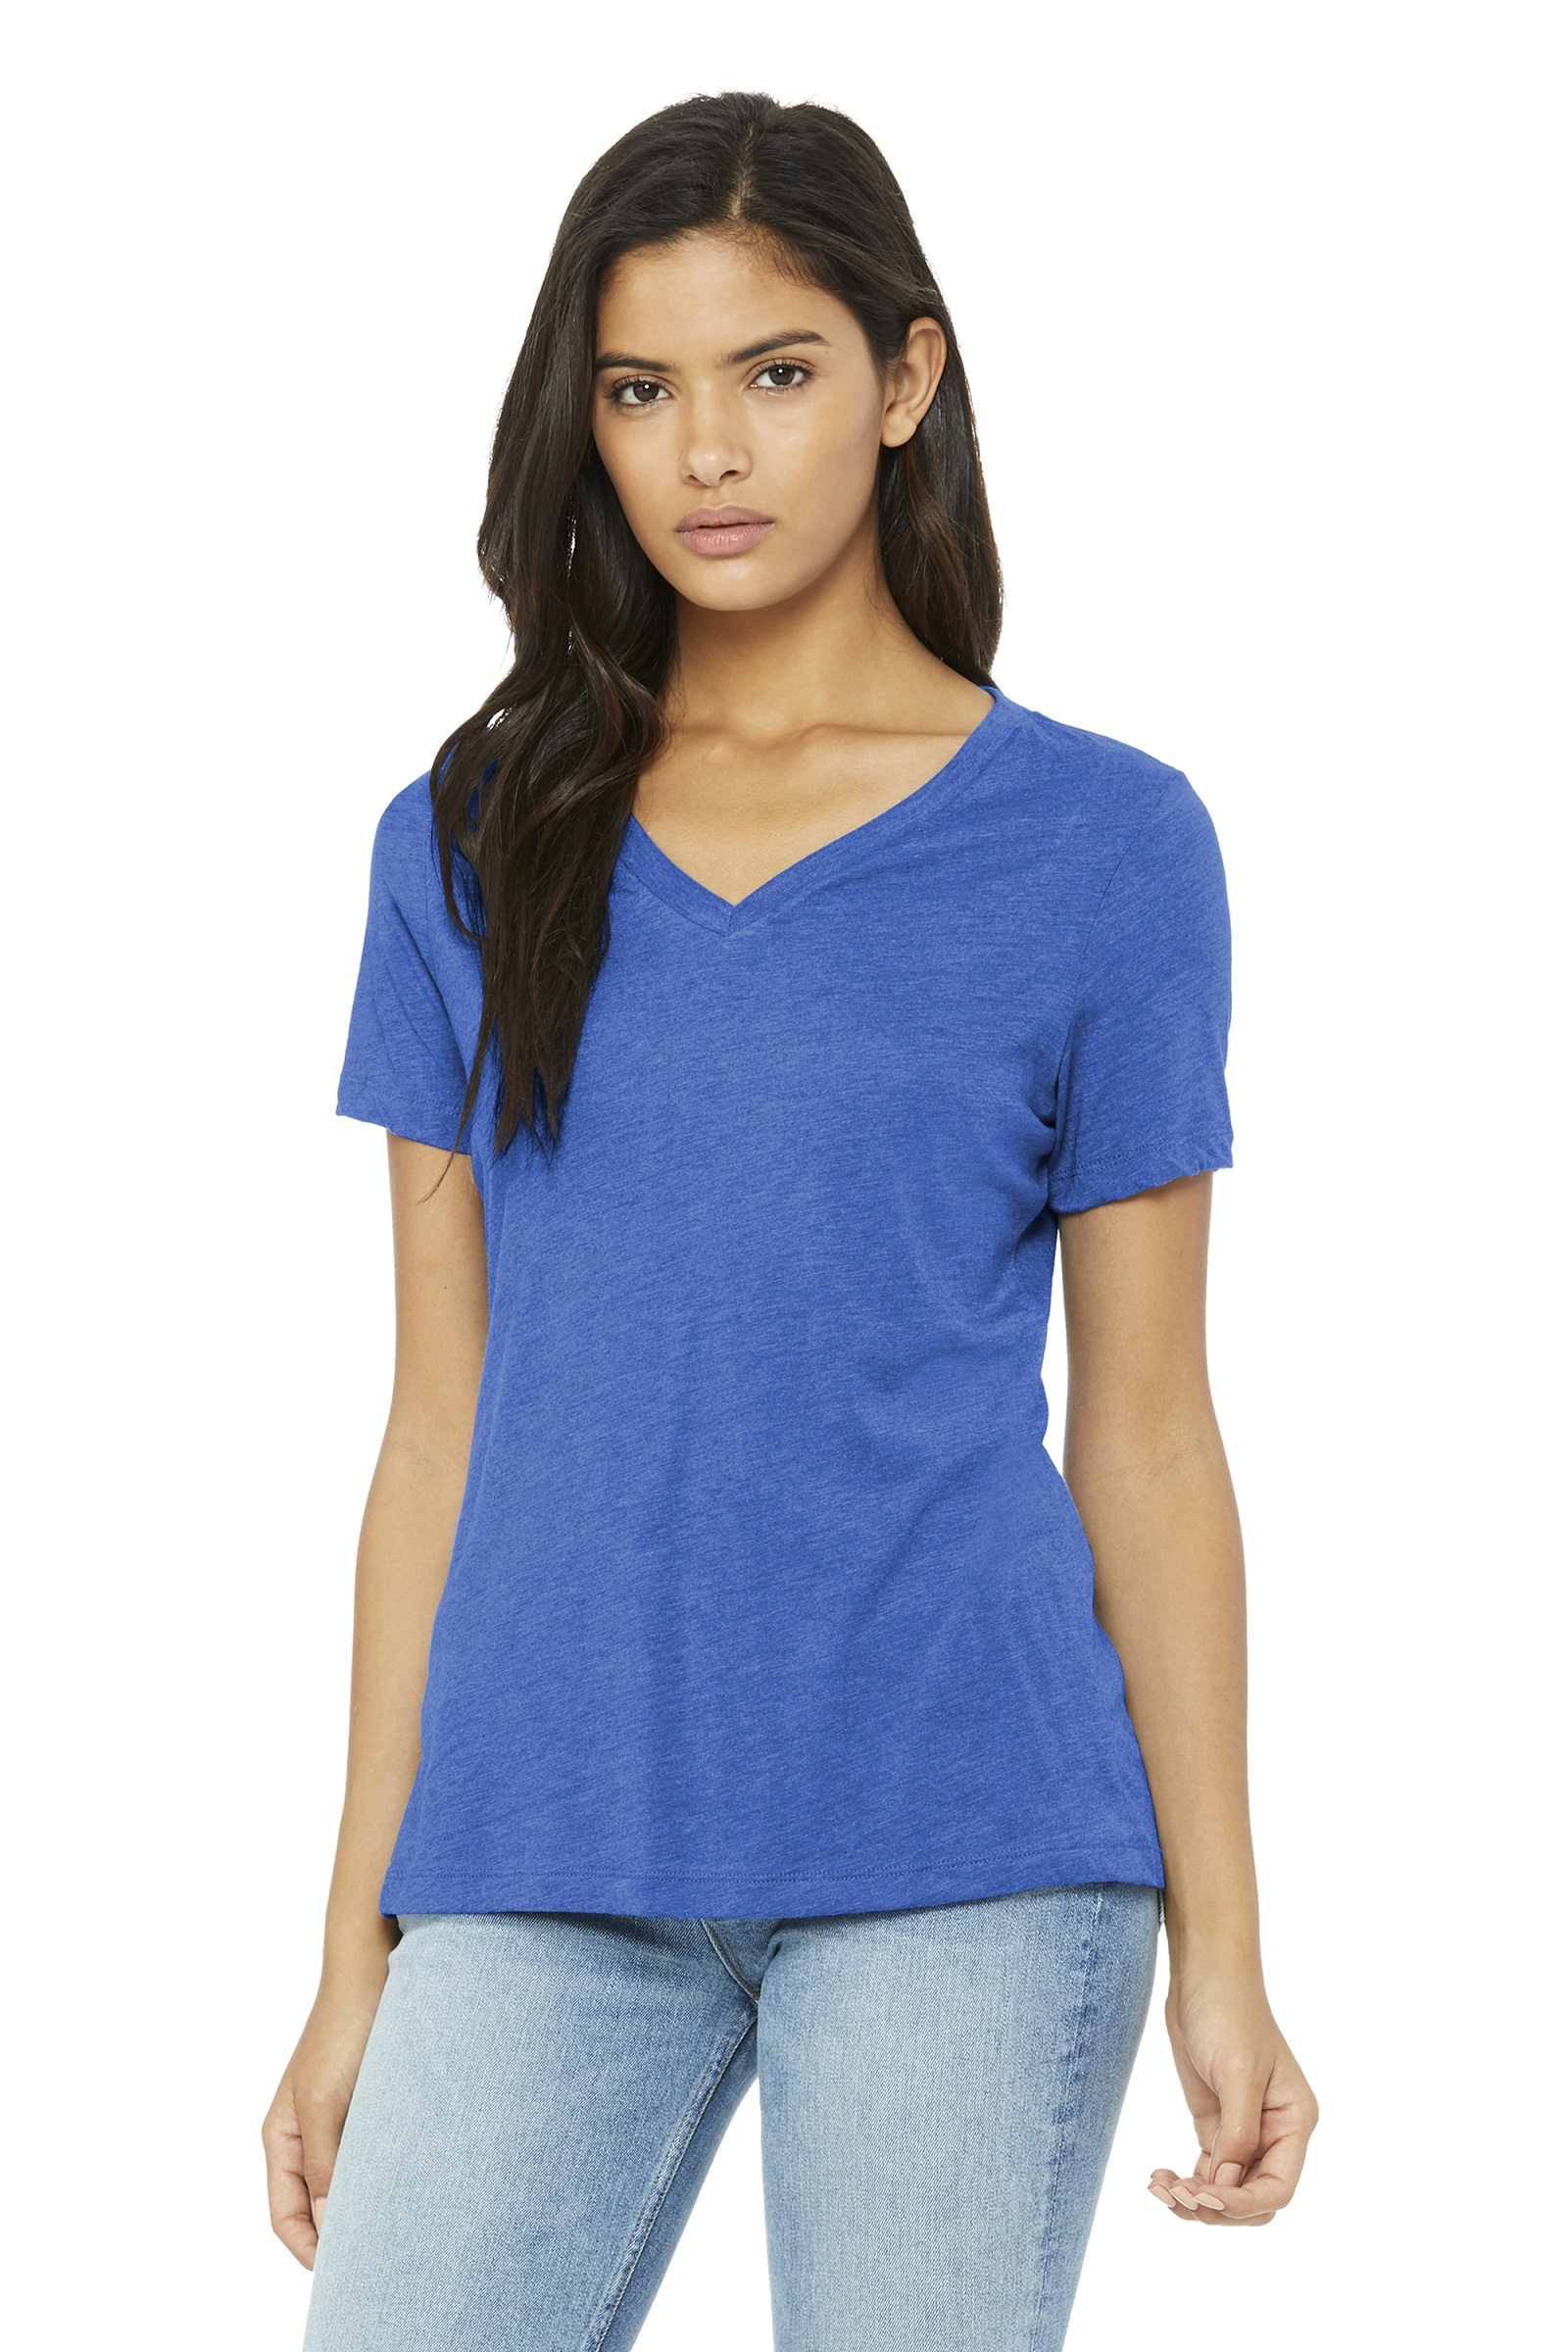 Bella + Canvas Embroidered Women's Relaxed Short Sleeve V-Neck Tee